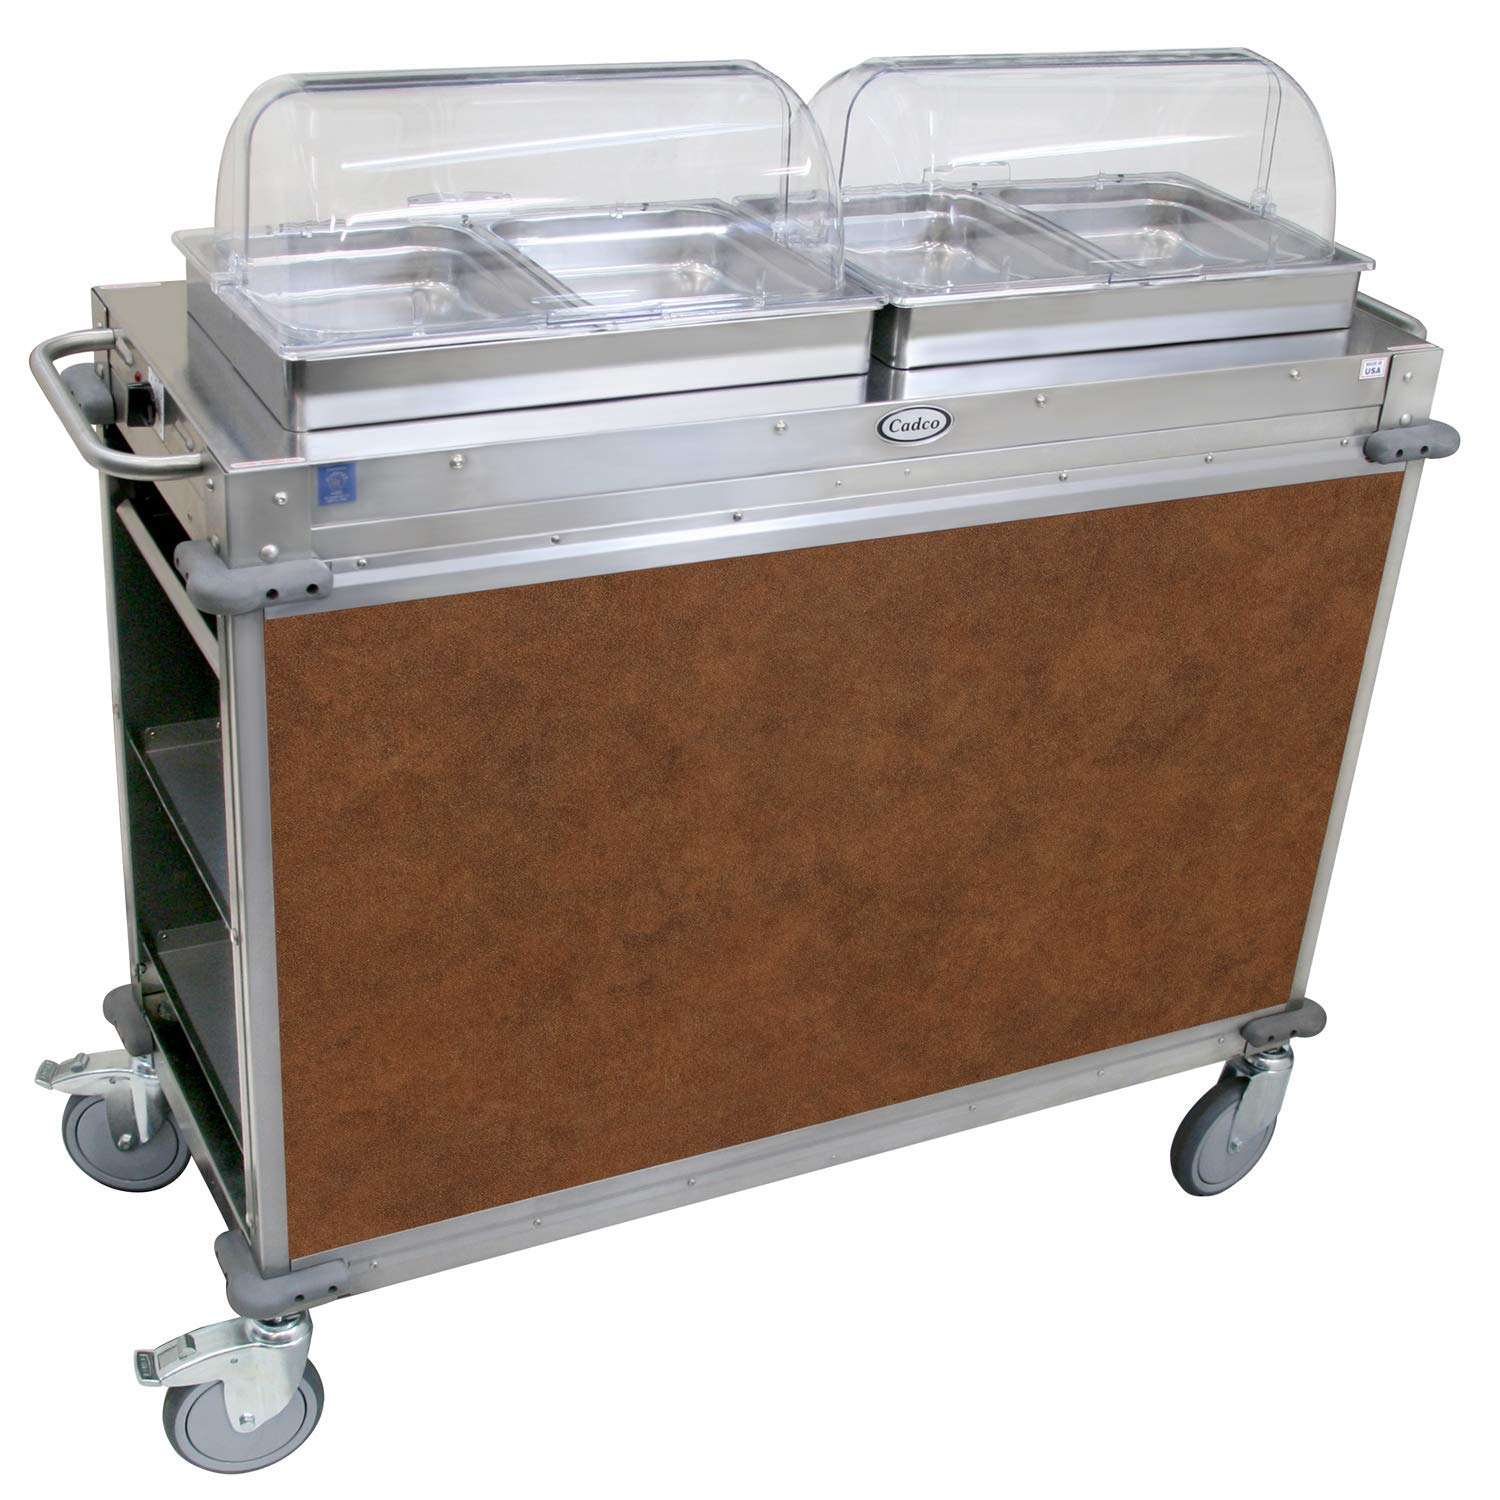 """Mobile Hot Buffet Cart Size: 49.5"""" H x 52.75"""" W x 20.75"""" D, Color: Flame Soapstone Red"""